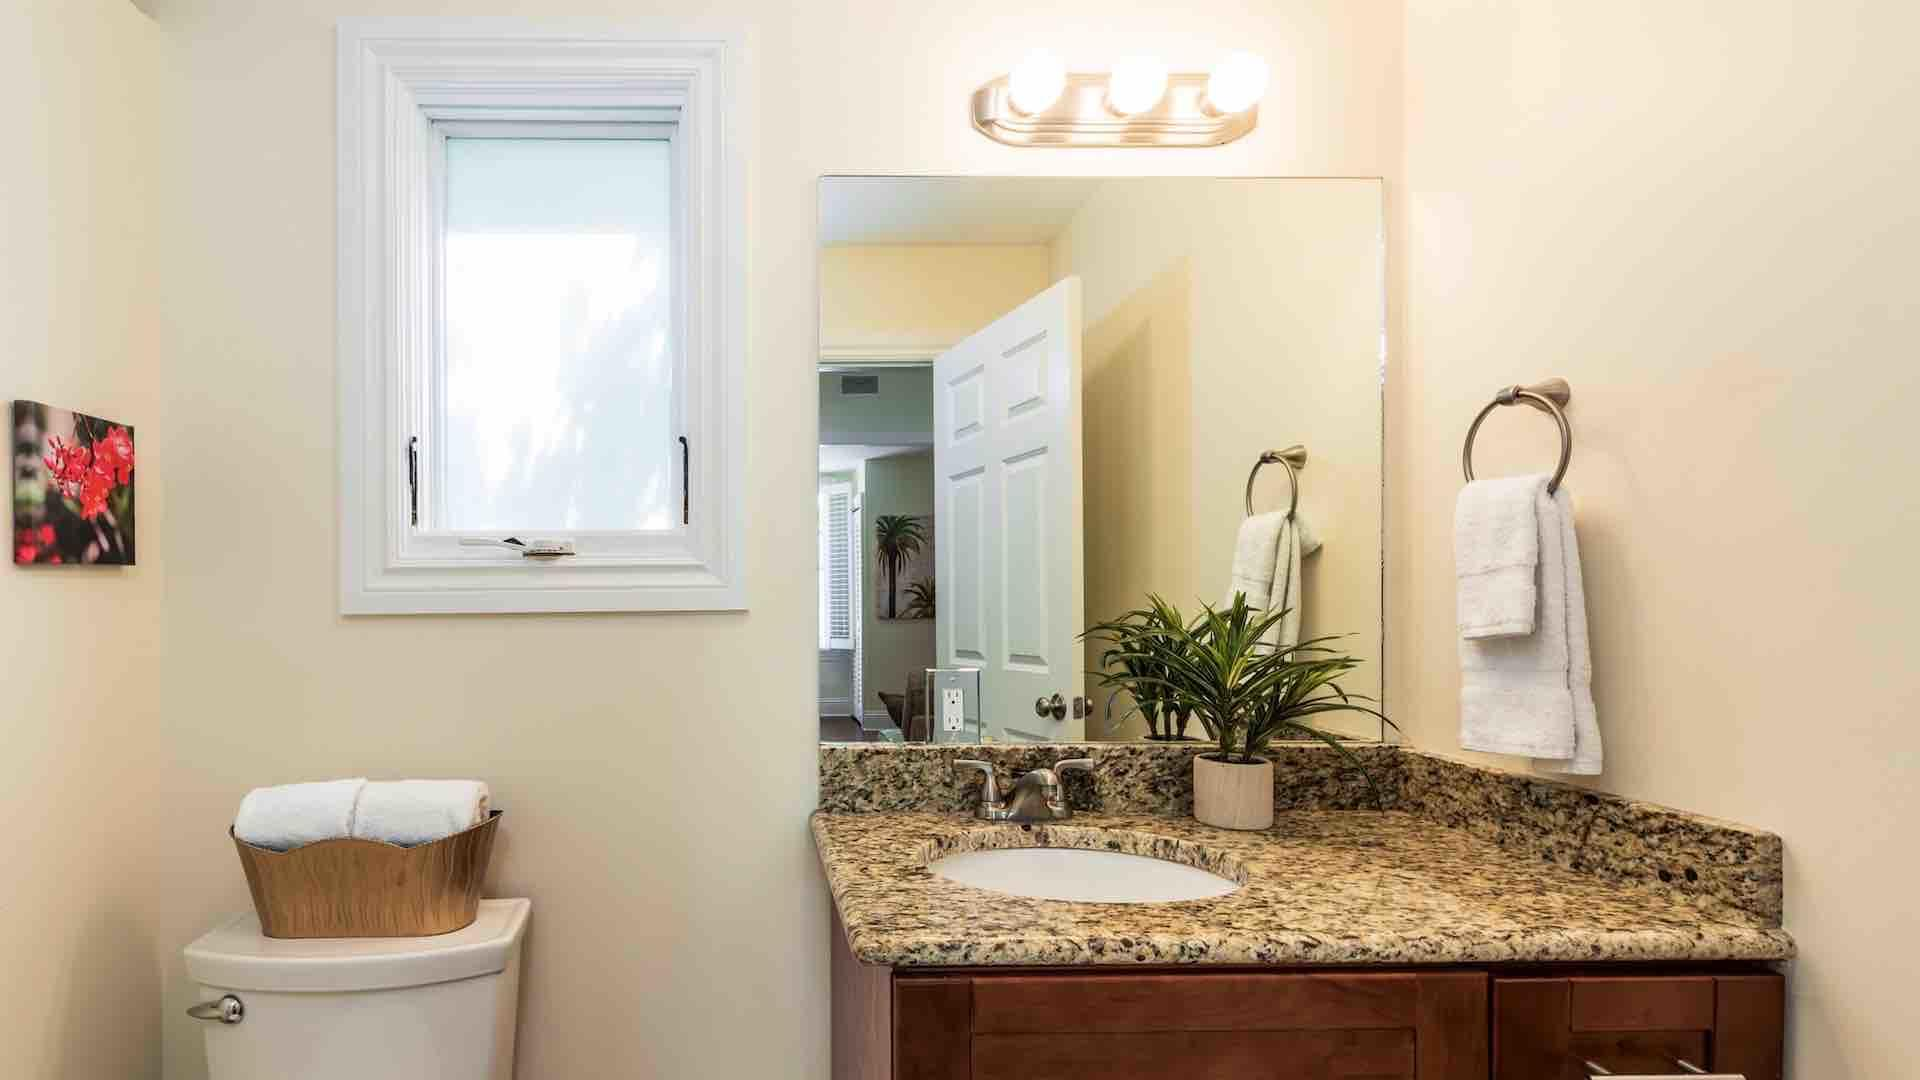 The second downstairs bathroom is located just off the living room and connects to the second bedroom...